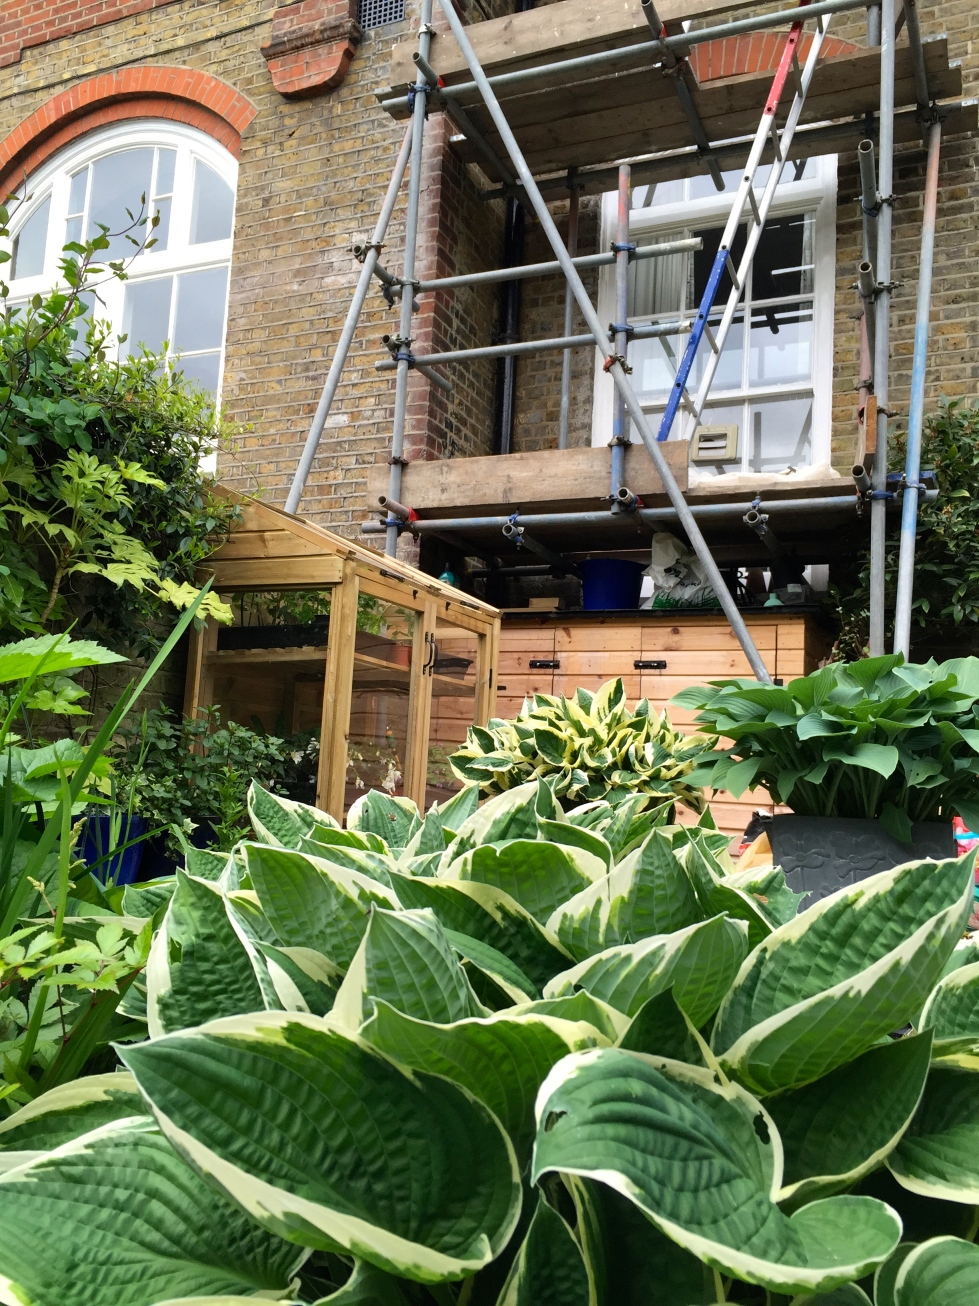 Our London Garden, scaffolding, May 2015